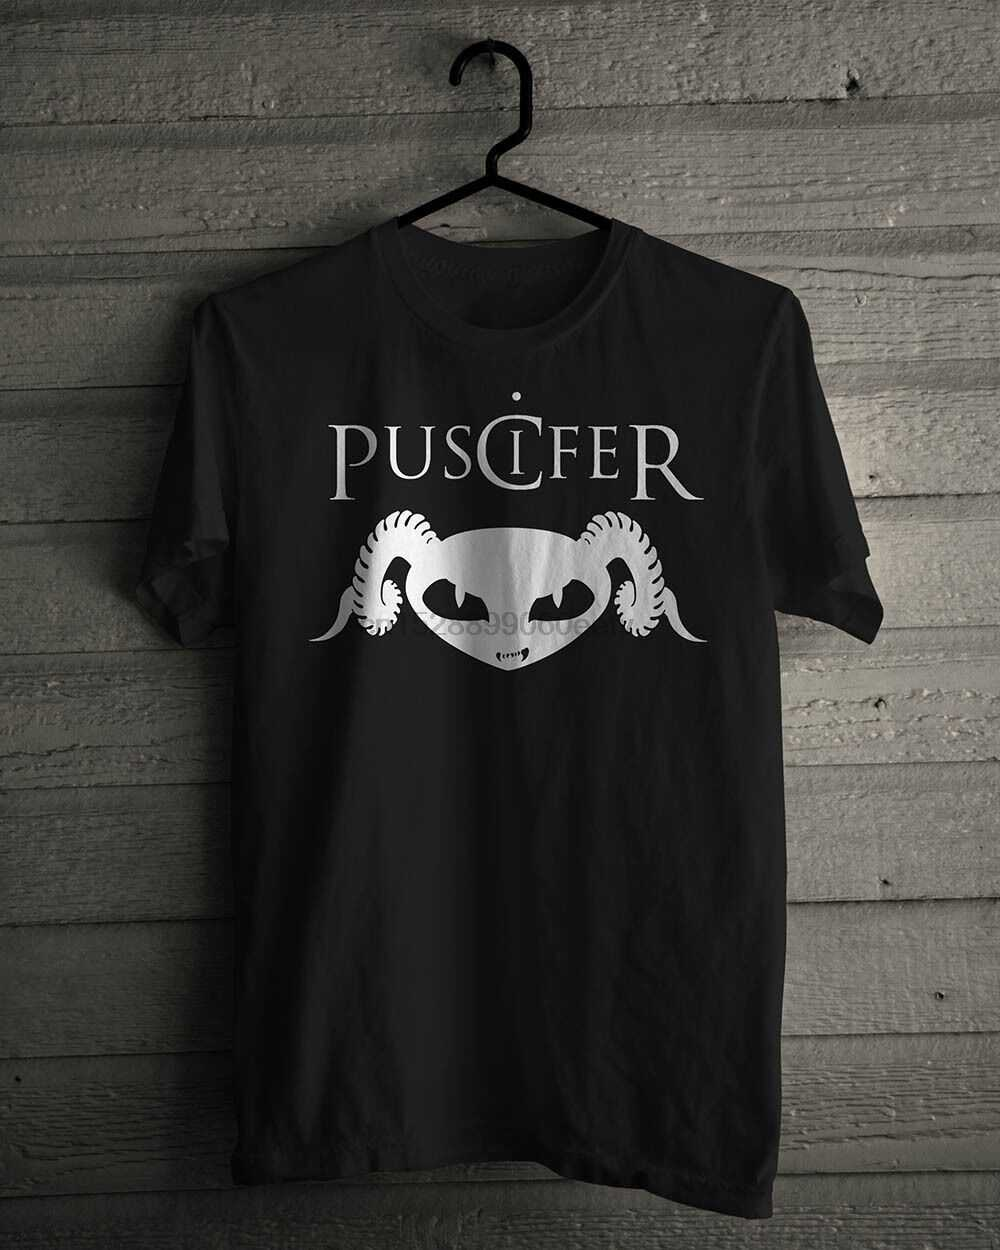 Nieuwe Puscifer Alternatieve Rock Band Basic Zwart T-Shirt Maat S-5XL